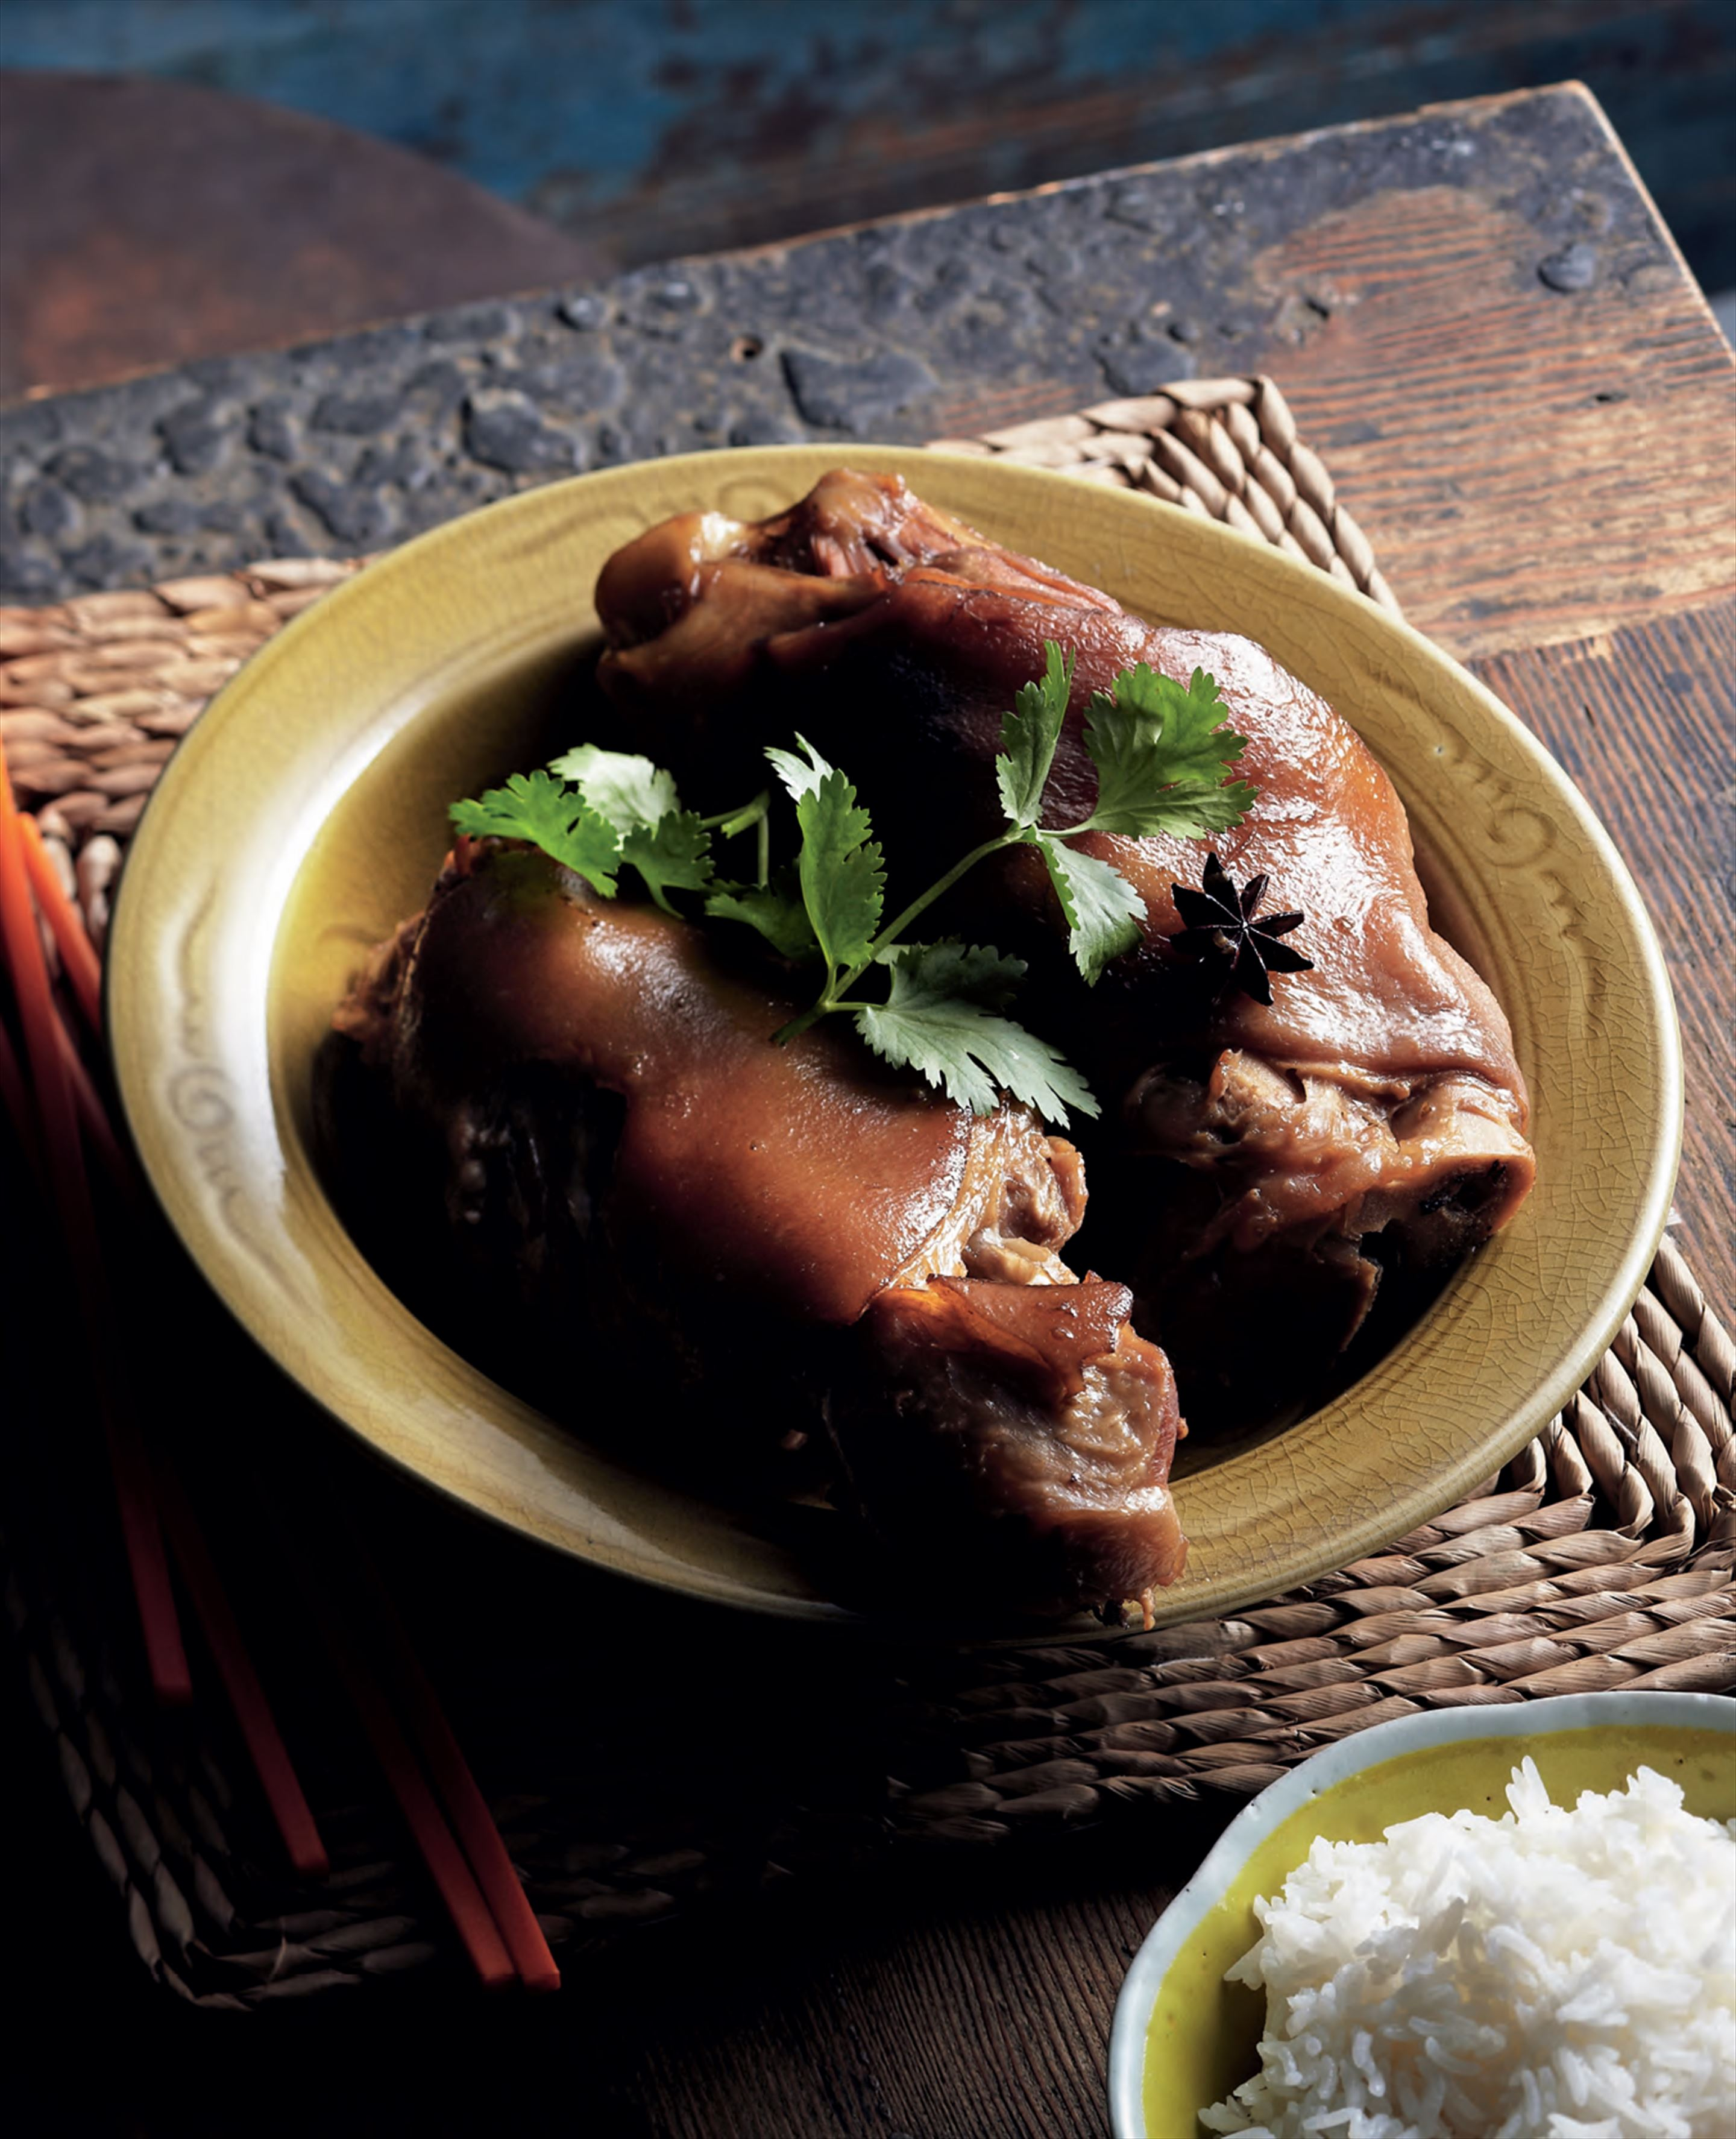 Slow-braised pork hocks